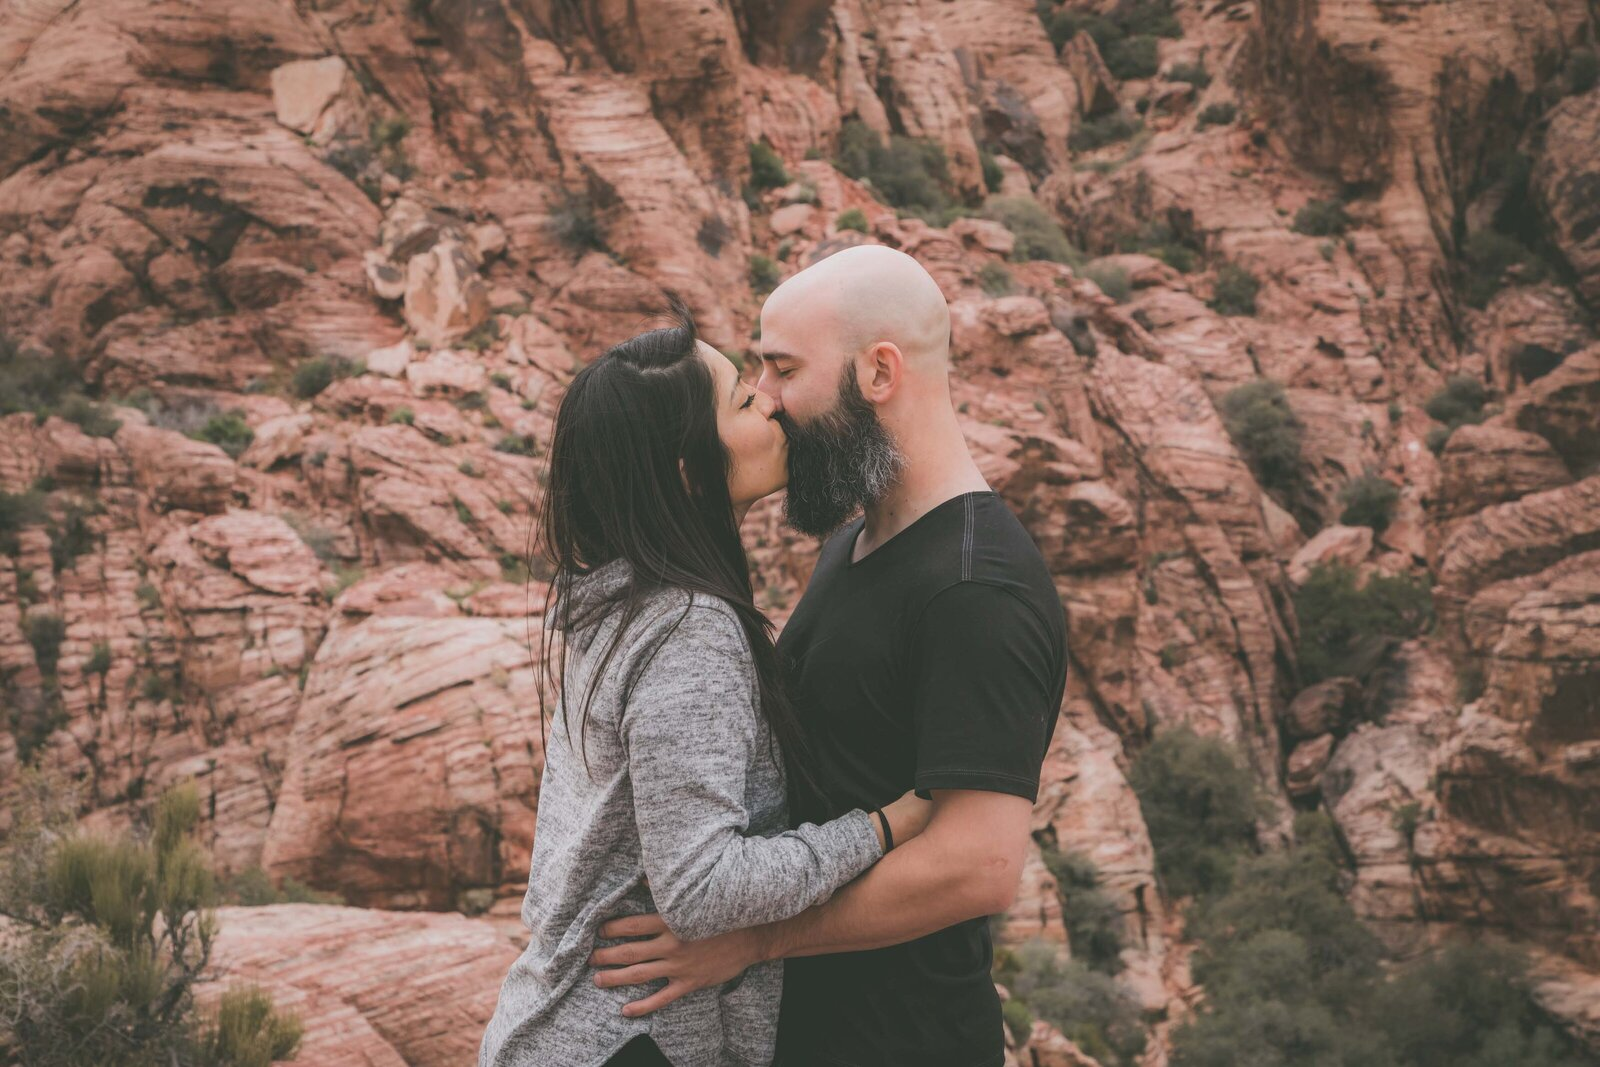 Couple kisses with red rocks in the background.